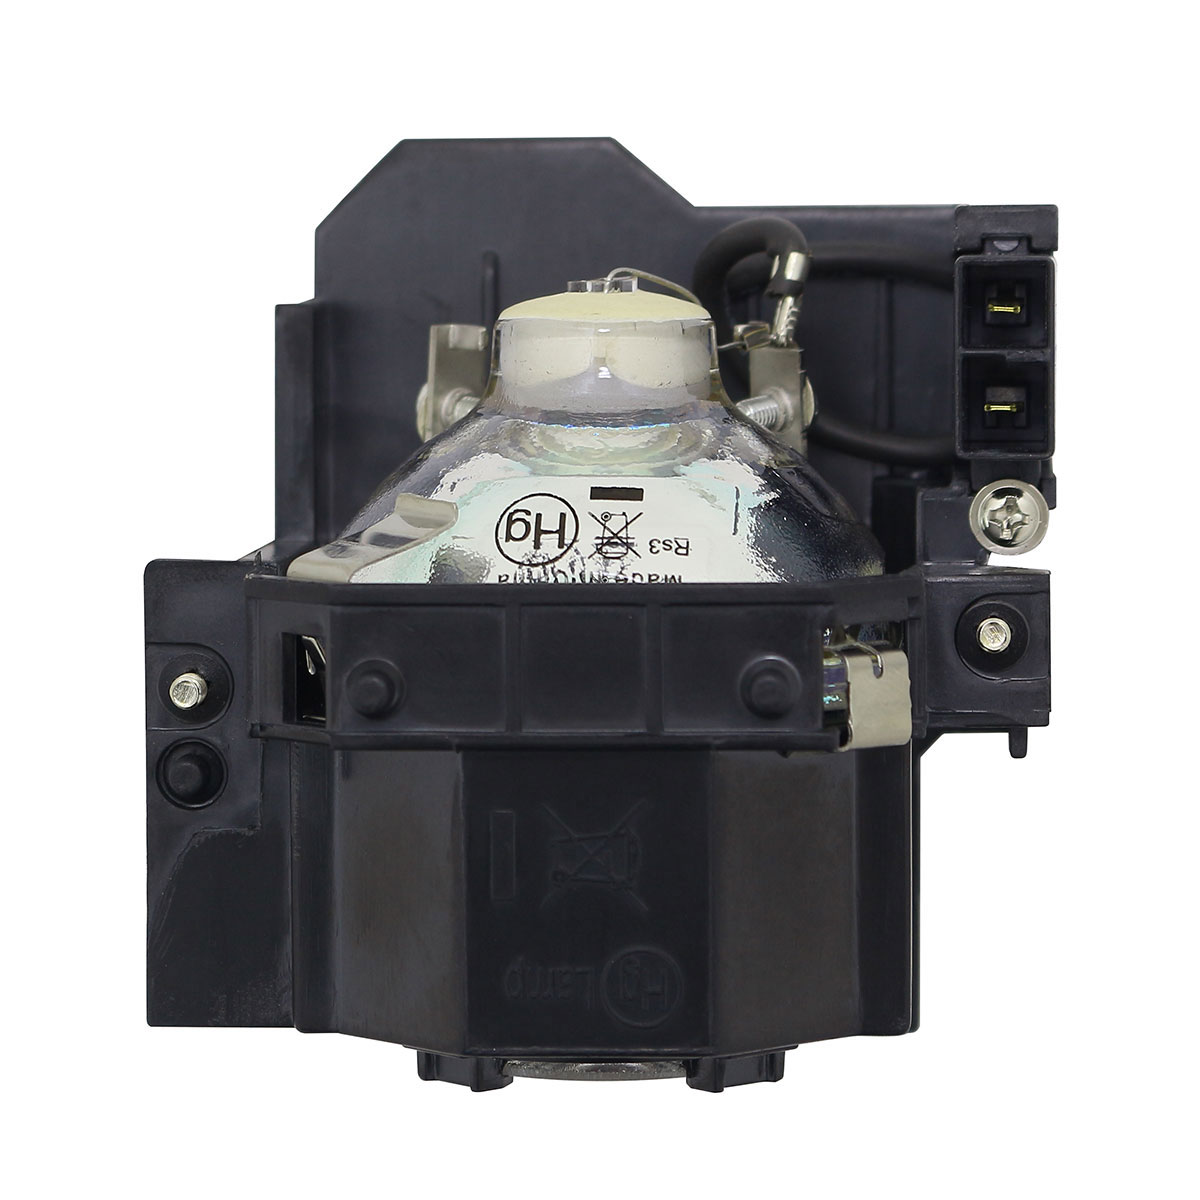 Lutema Platinum Bulb for Epson H330C Projector (Lamp Only) - image 2 of 5